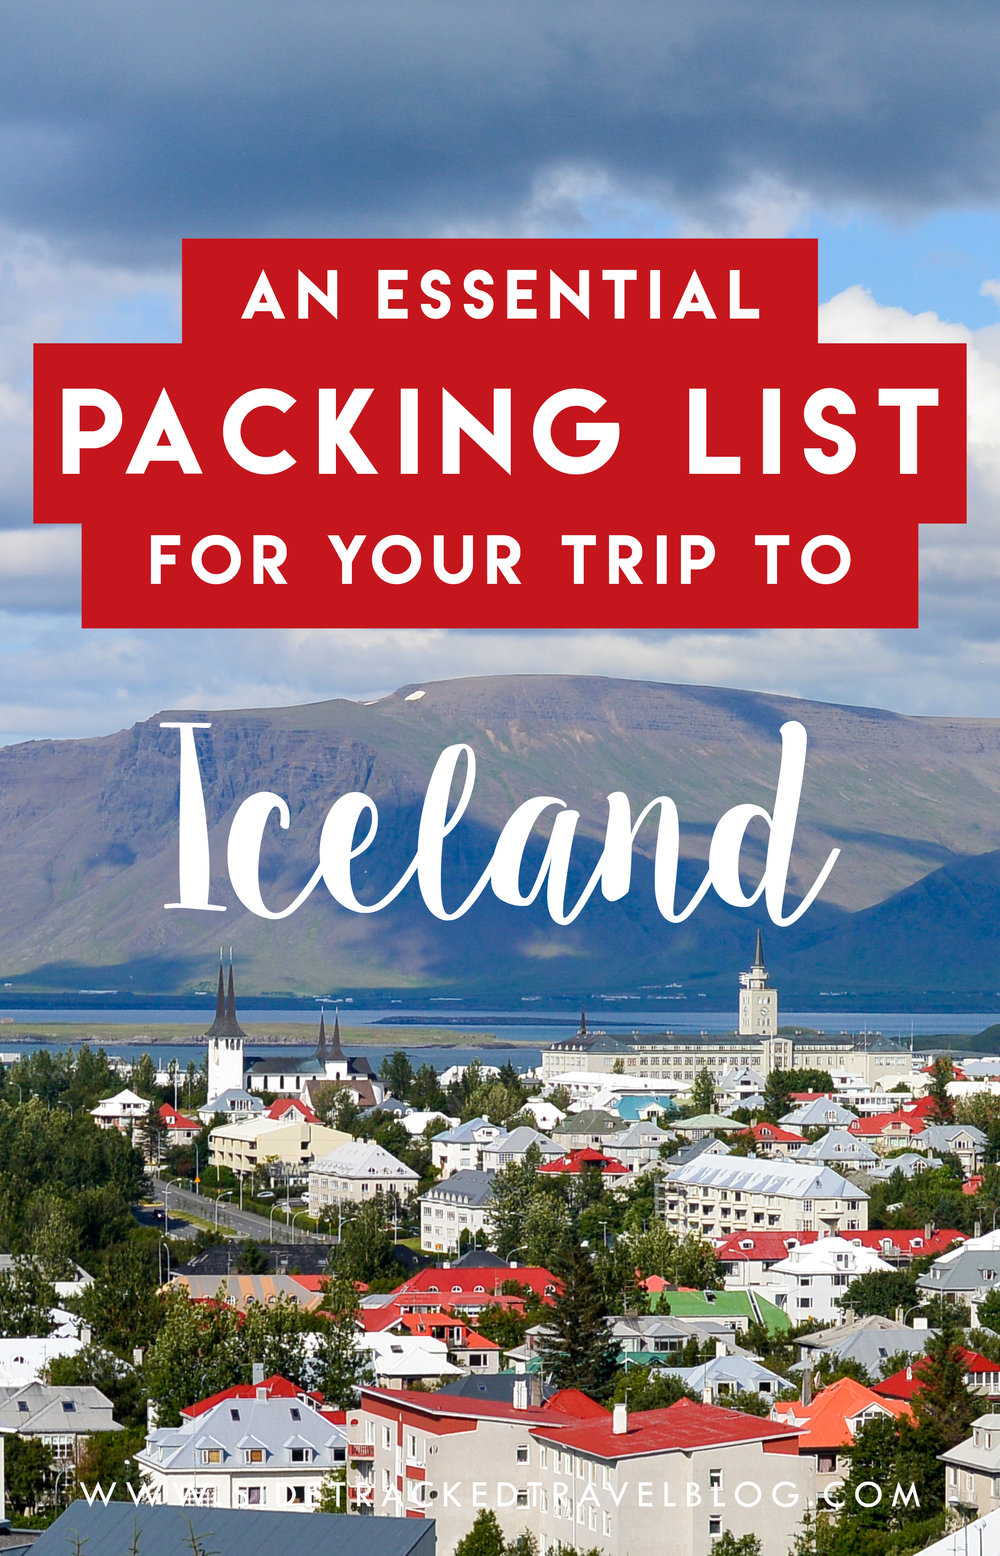 Are you packing for a trip to Iceland? Here's a helpful list of essential items to bring!